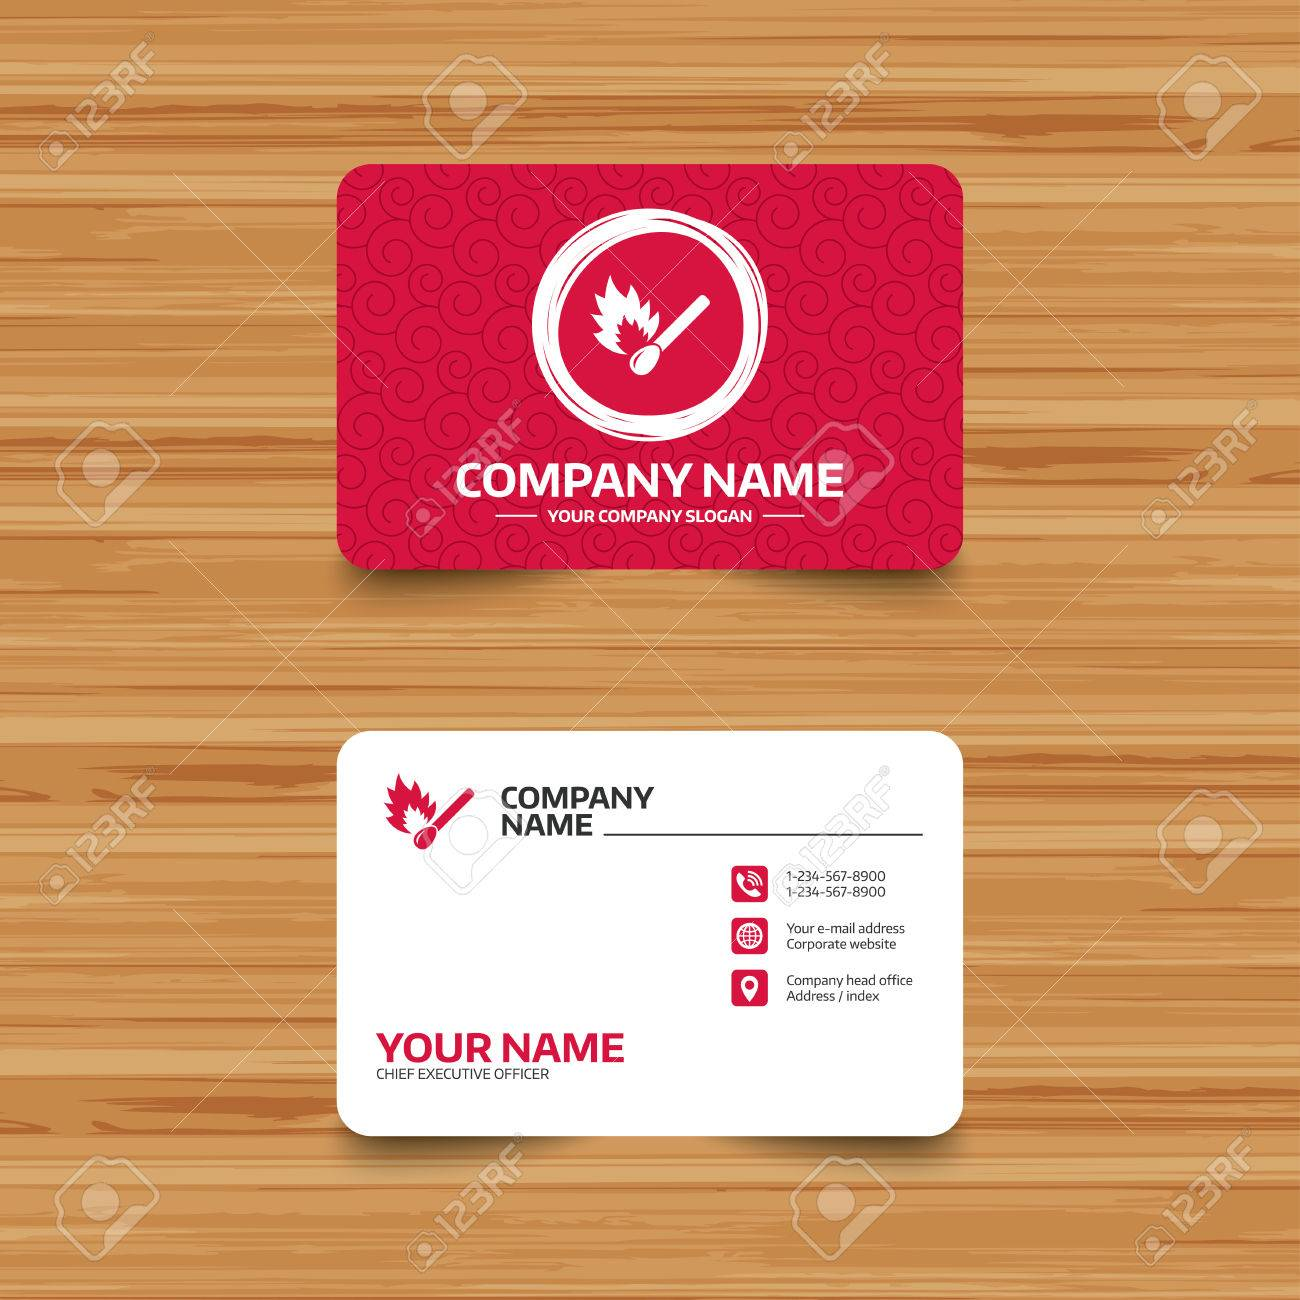 business card template with texture match stick burns icon